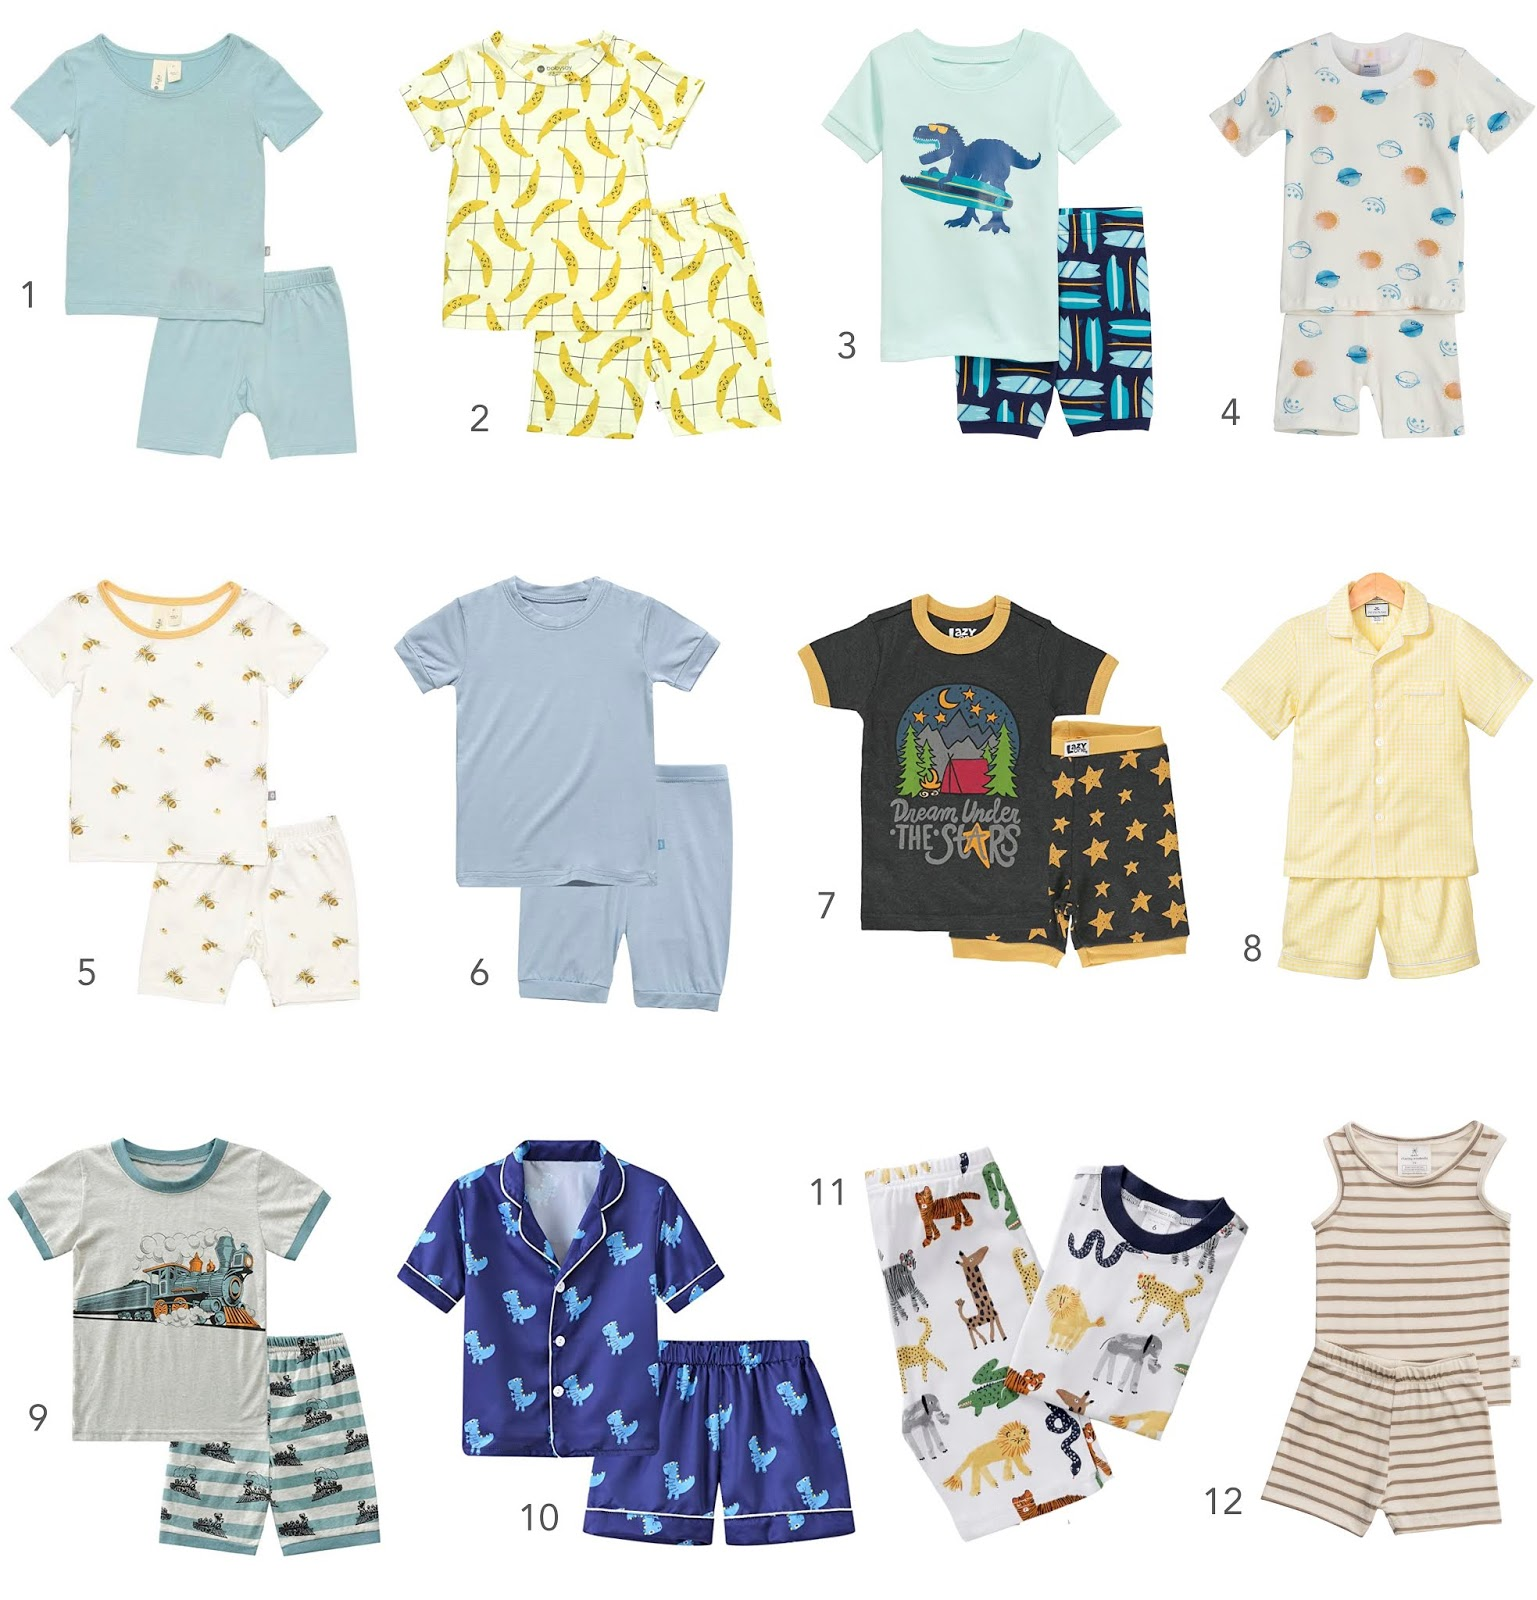 A round-up of 12 cute summer pajamas for boys